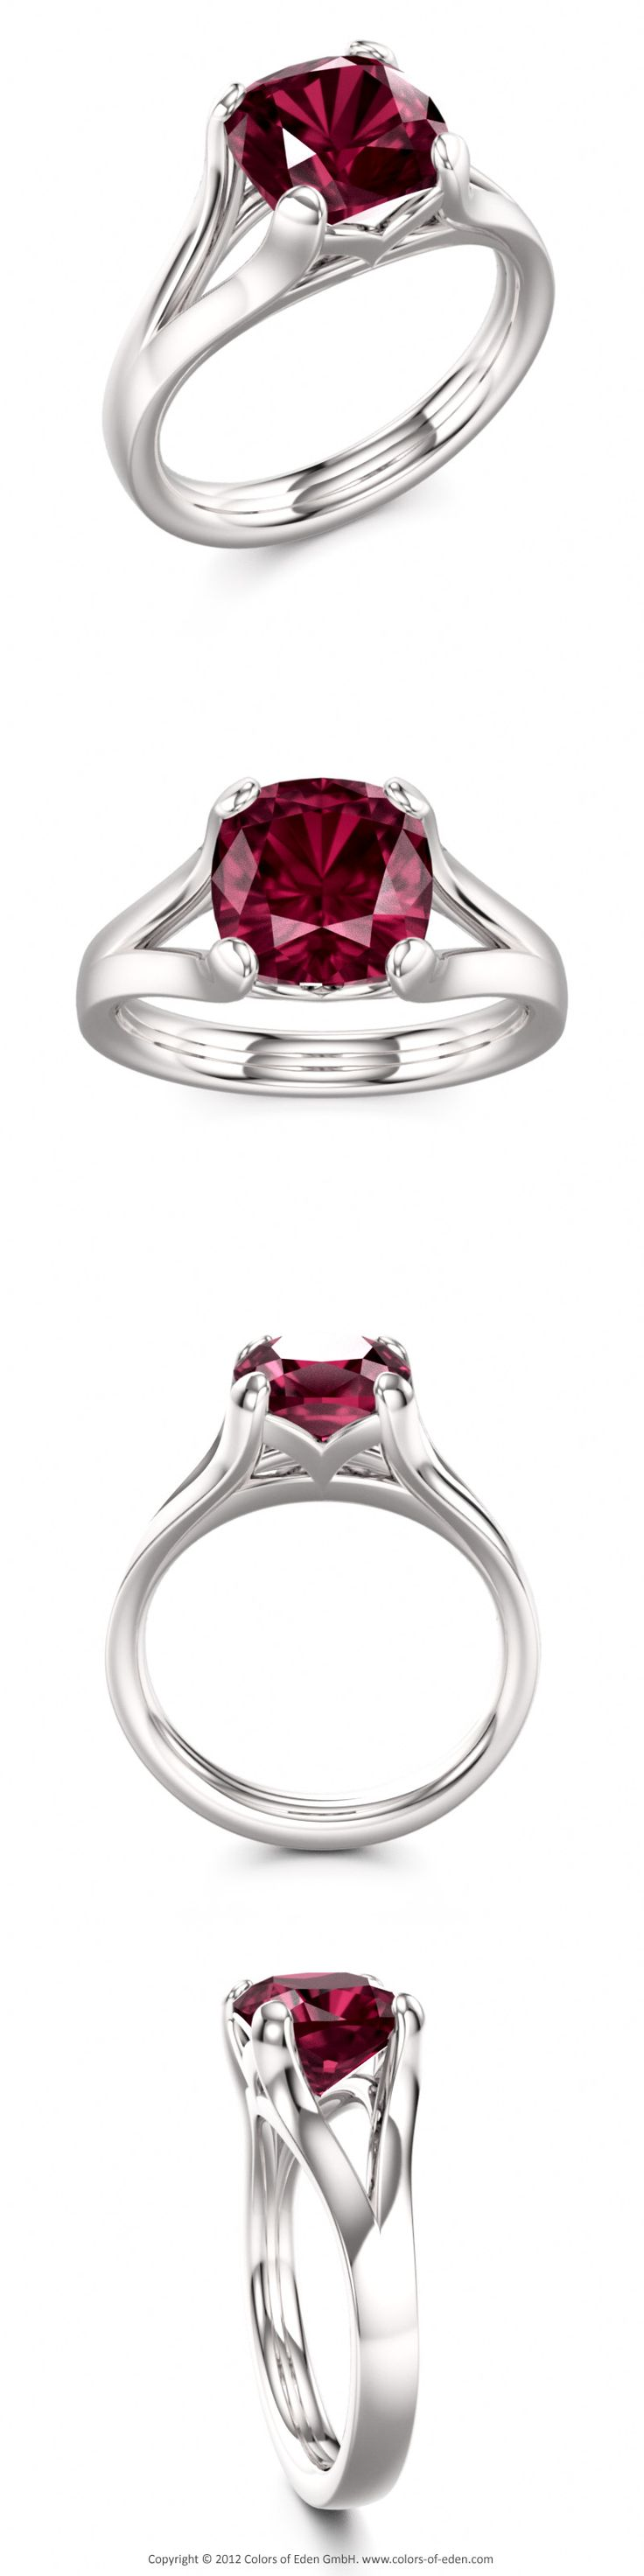 "Sterling Silver Ring with Rhodolite Garnet - ""Kir Royal"""